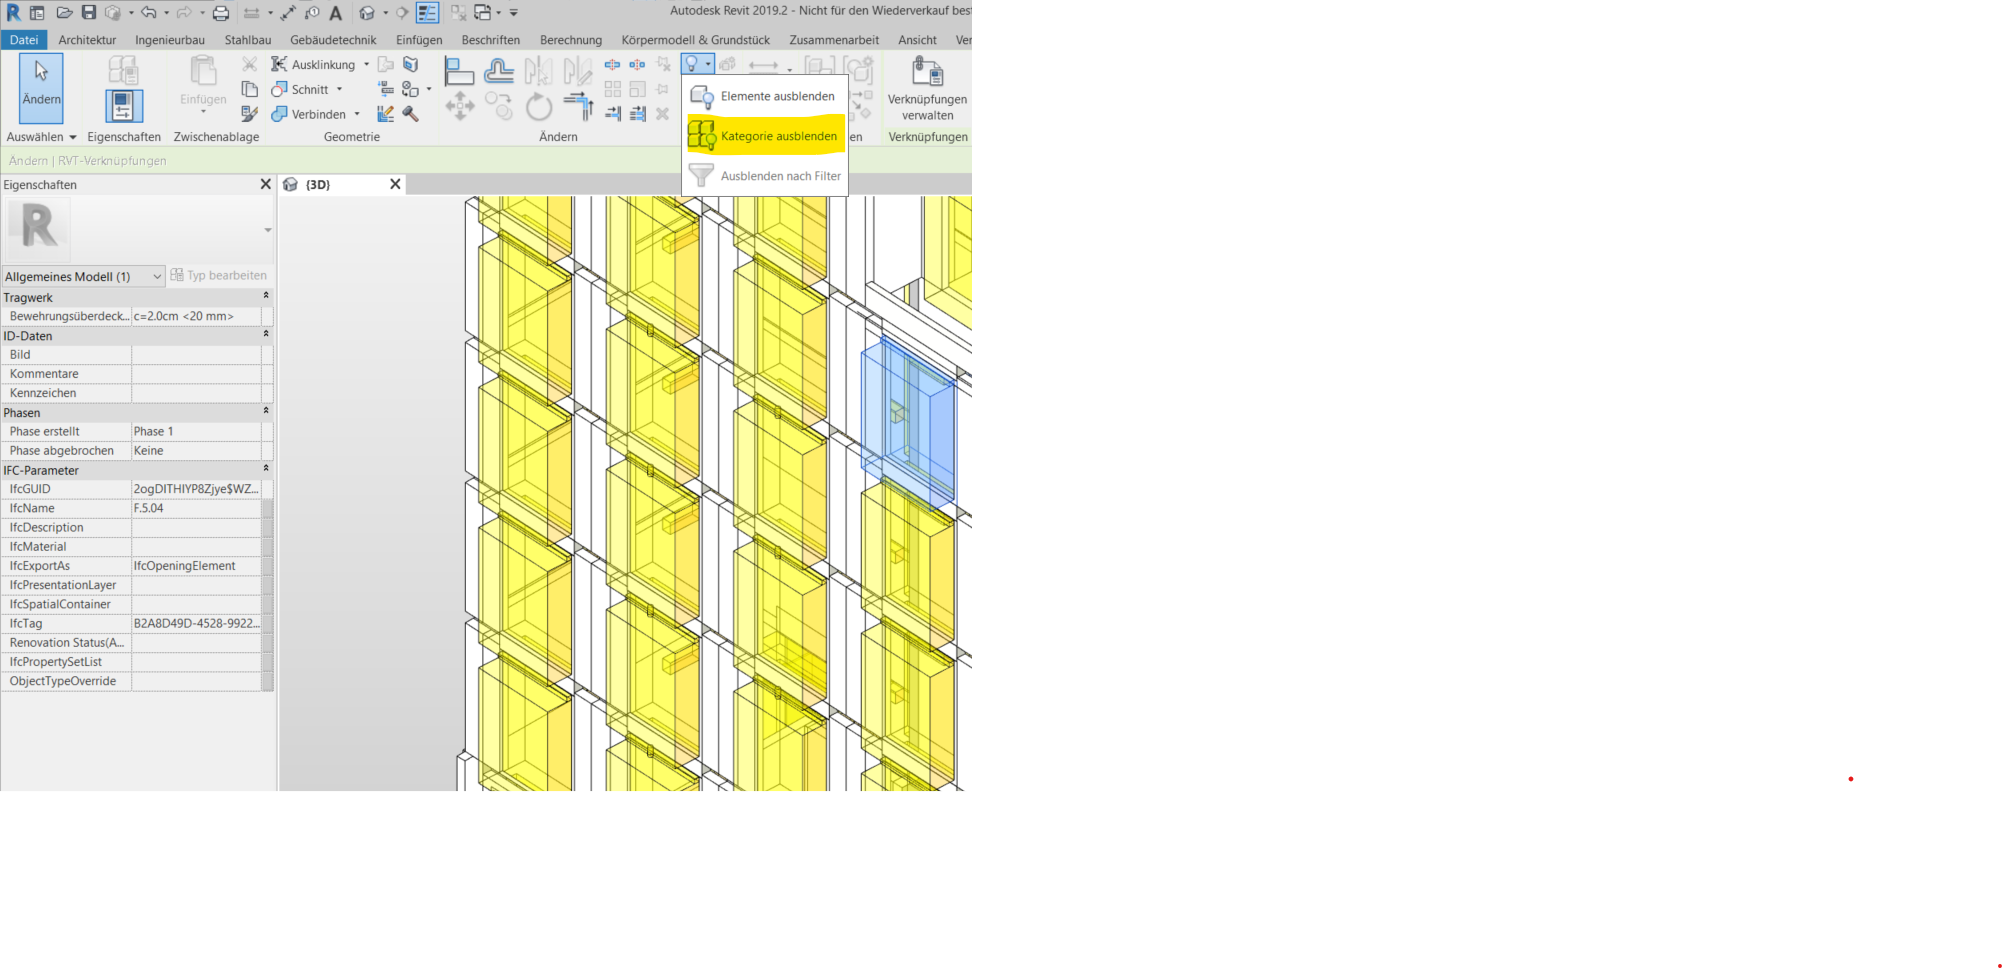 Vectorworks to Revit - General Discussion - Vectorworks Community Board